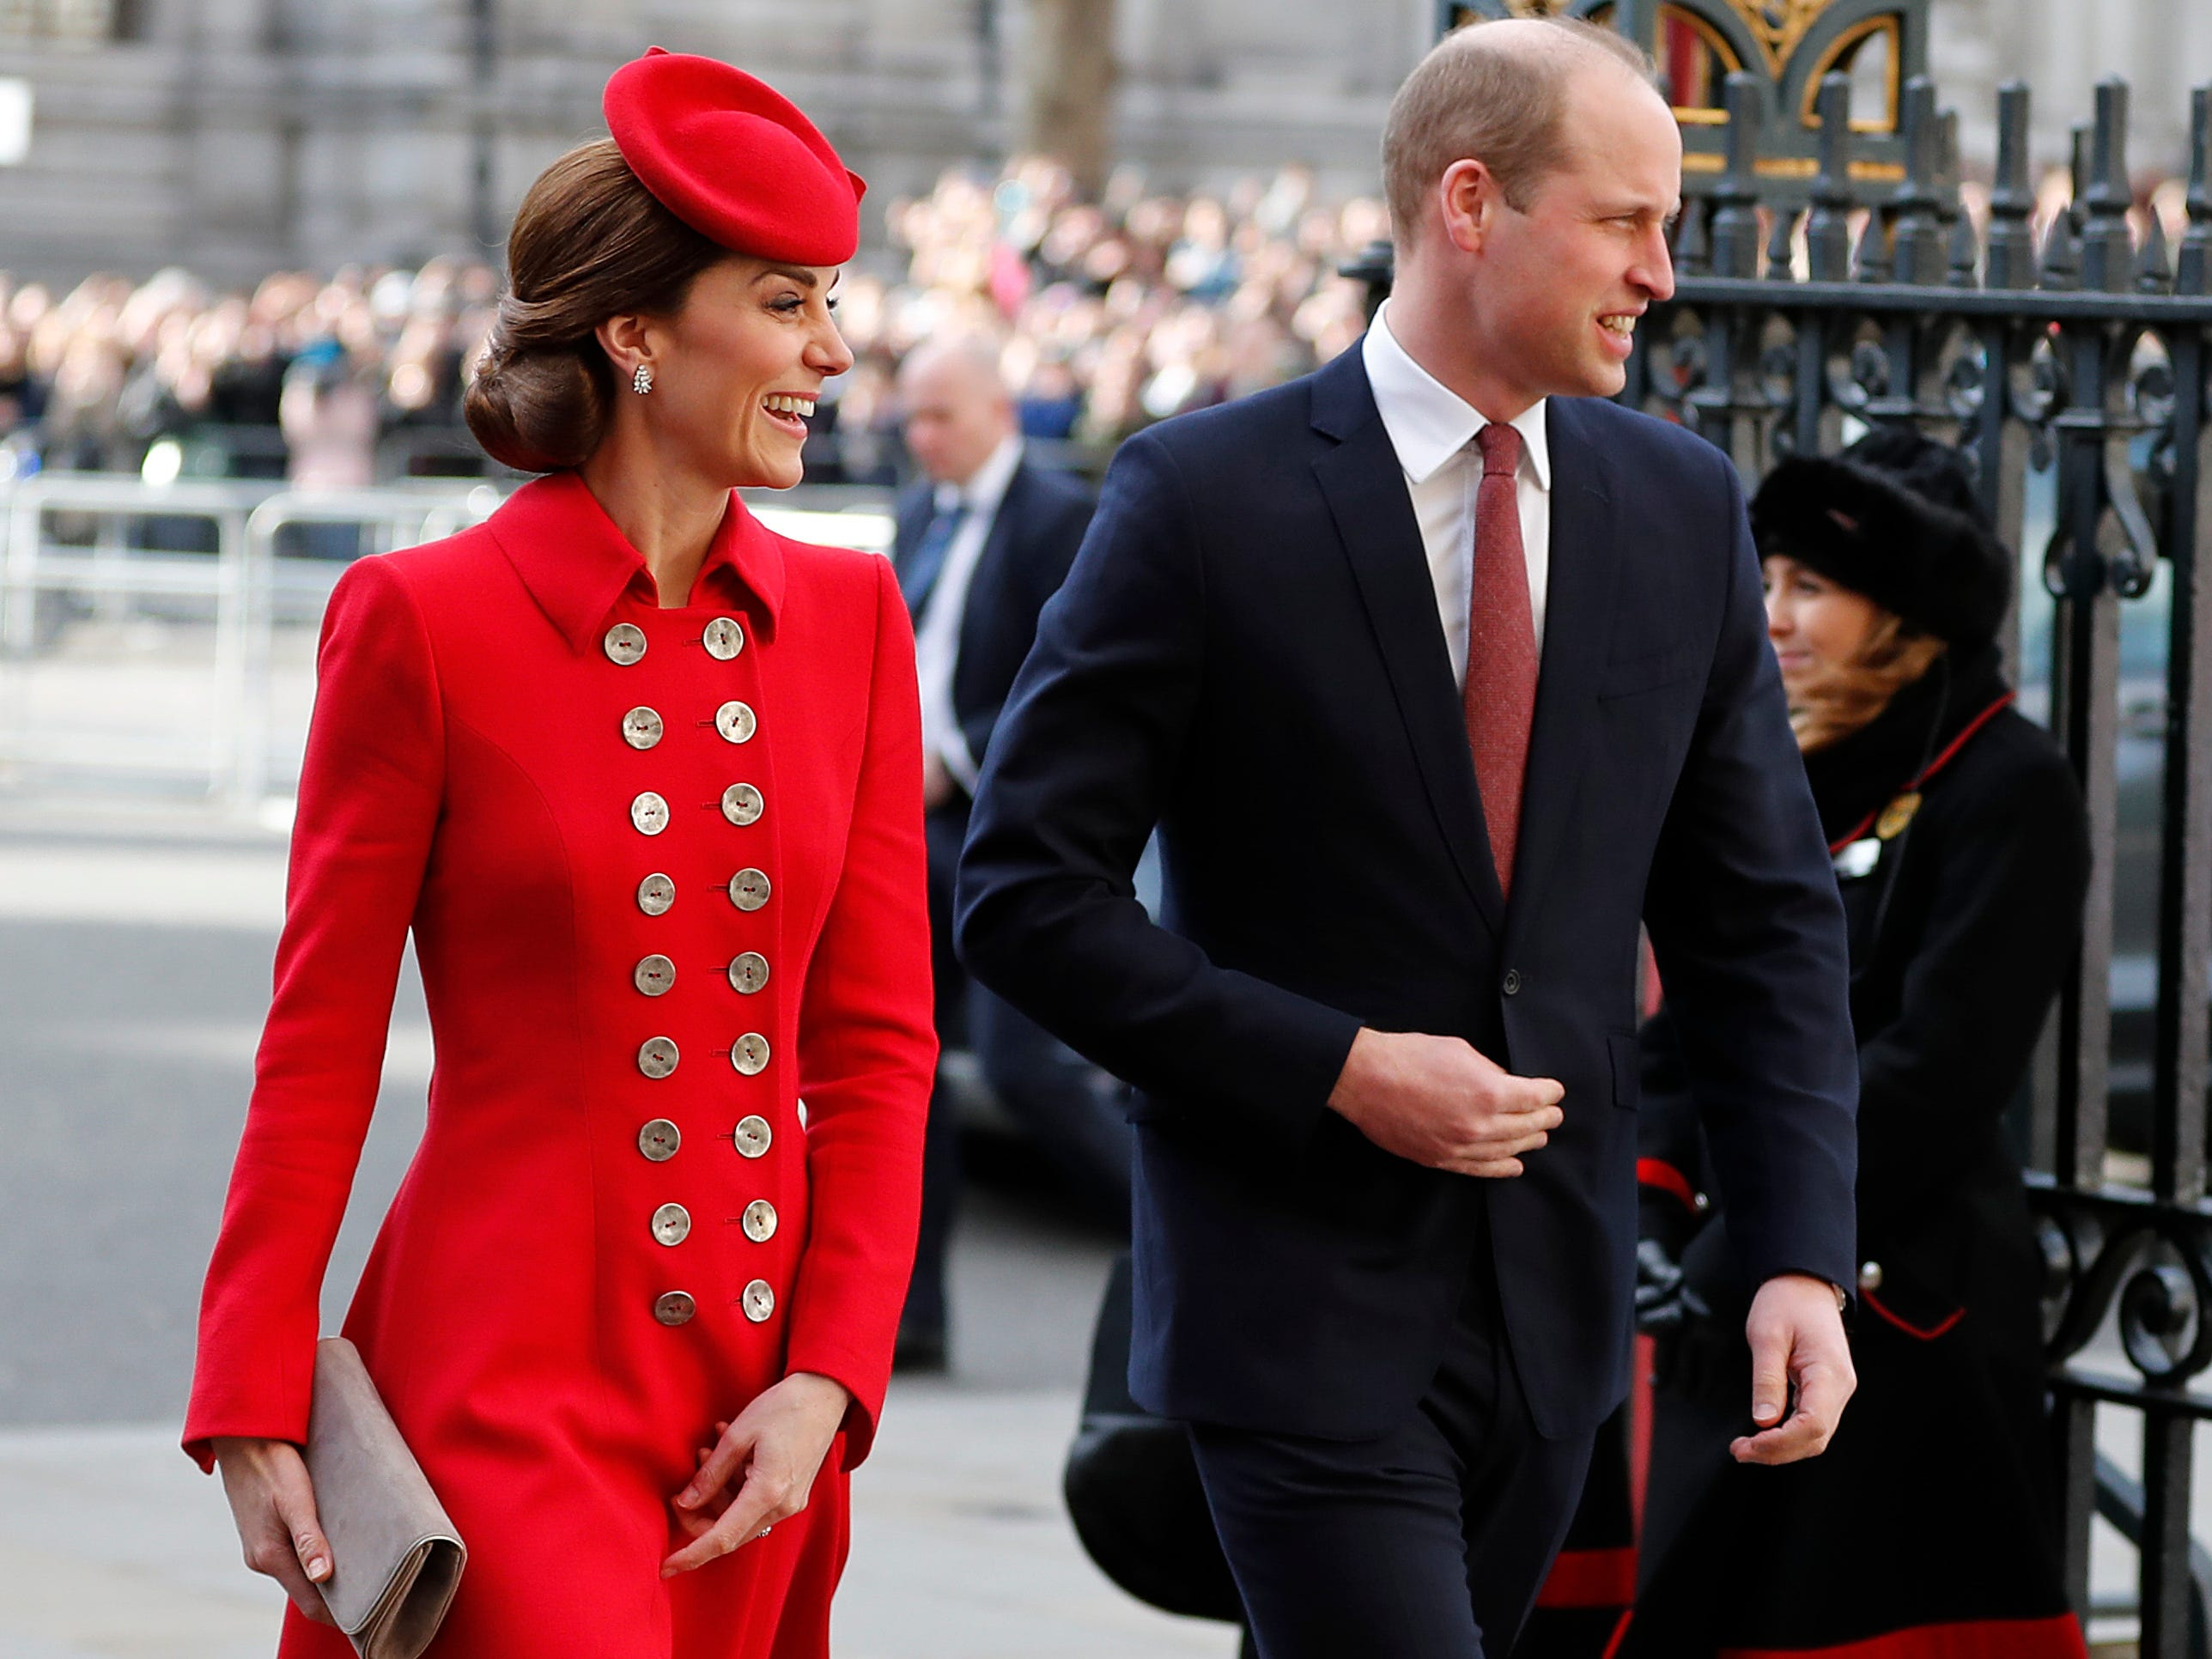 Britain's Kate, the Duchess of Cambridge and Britain's Prince William arrive to attend the Commonwealth Service at Westminster Abbey on Commonwealth Day in London, Monday, March 11, 2019. Commonwealth Day has a special significance this year, as 2019 marks the 70th anniversary of the modern Commonwealth - a global network of 53 countries and almost 2.4 billion people, a third of the world's population, of whom 60 percent are under 30 years old.